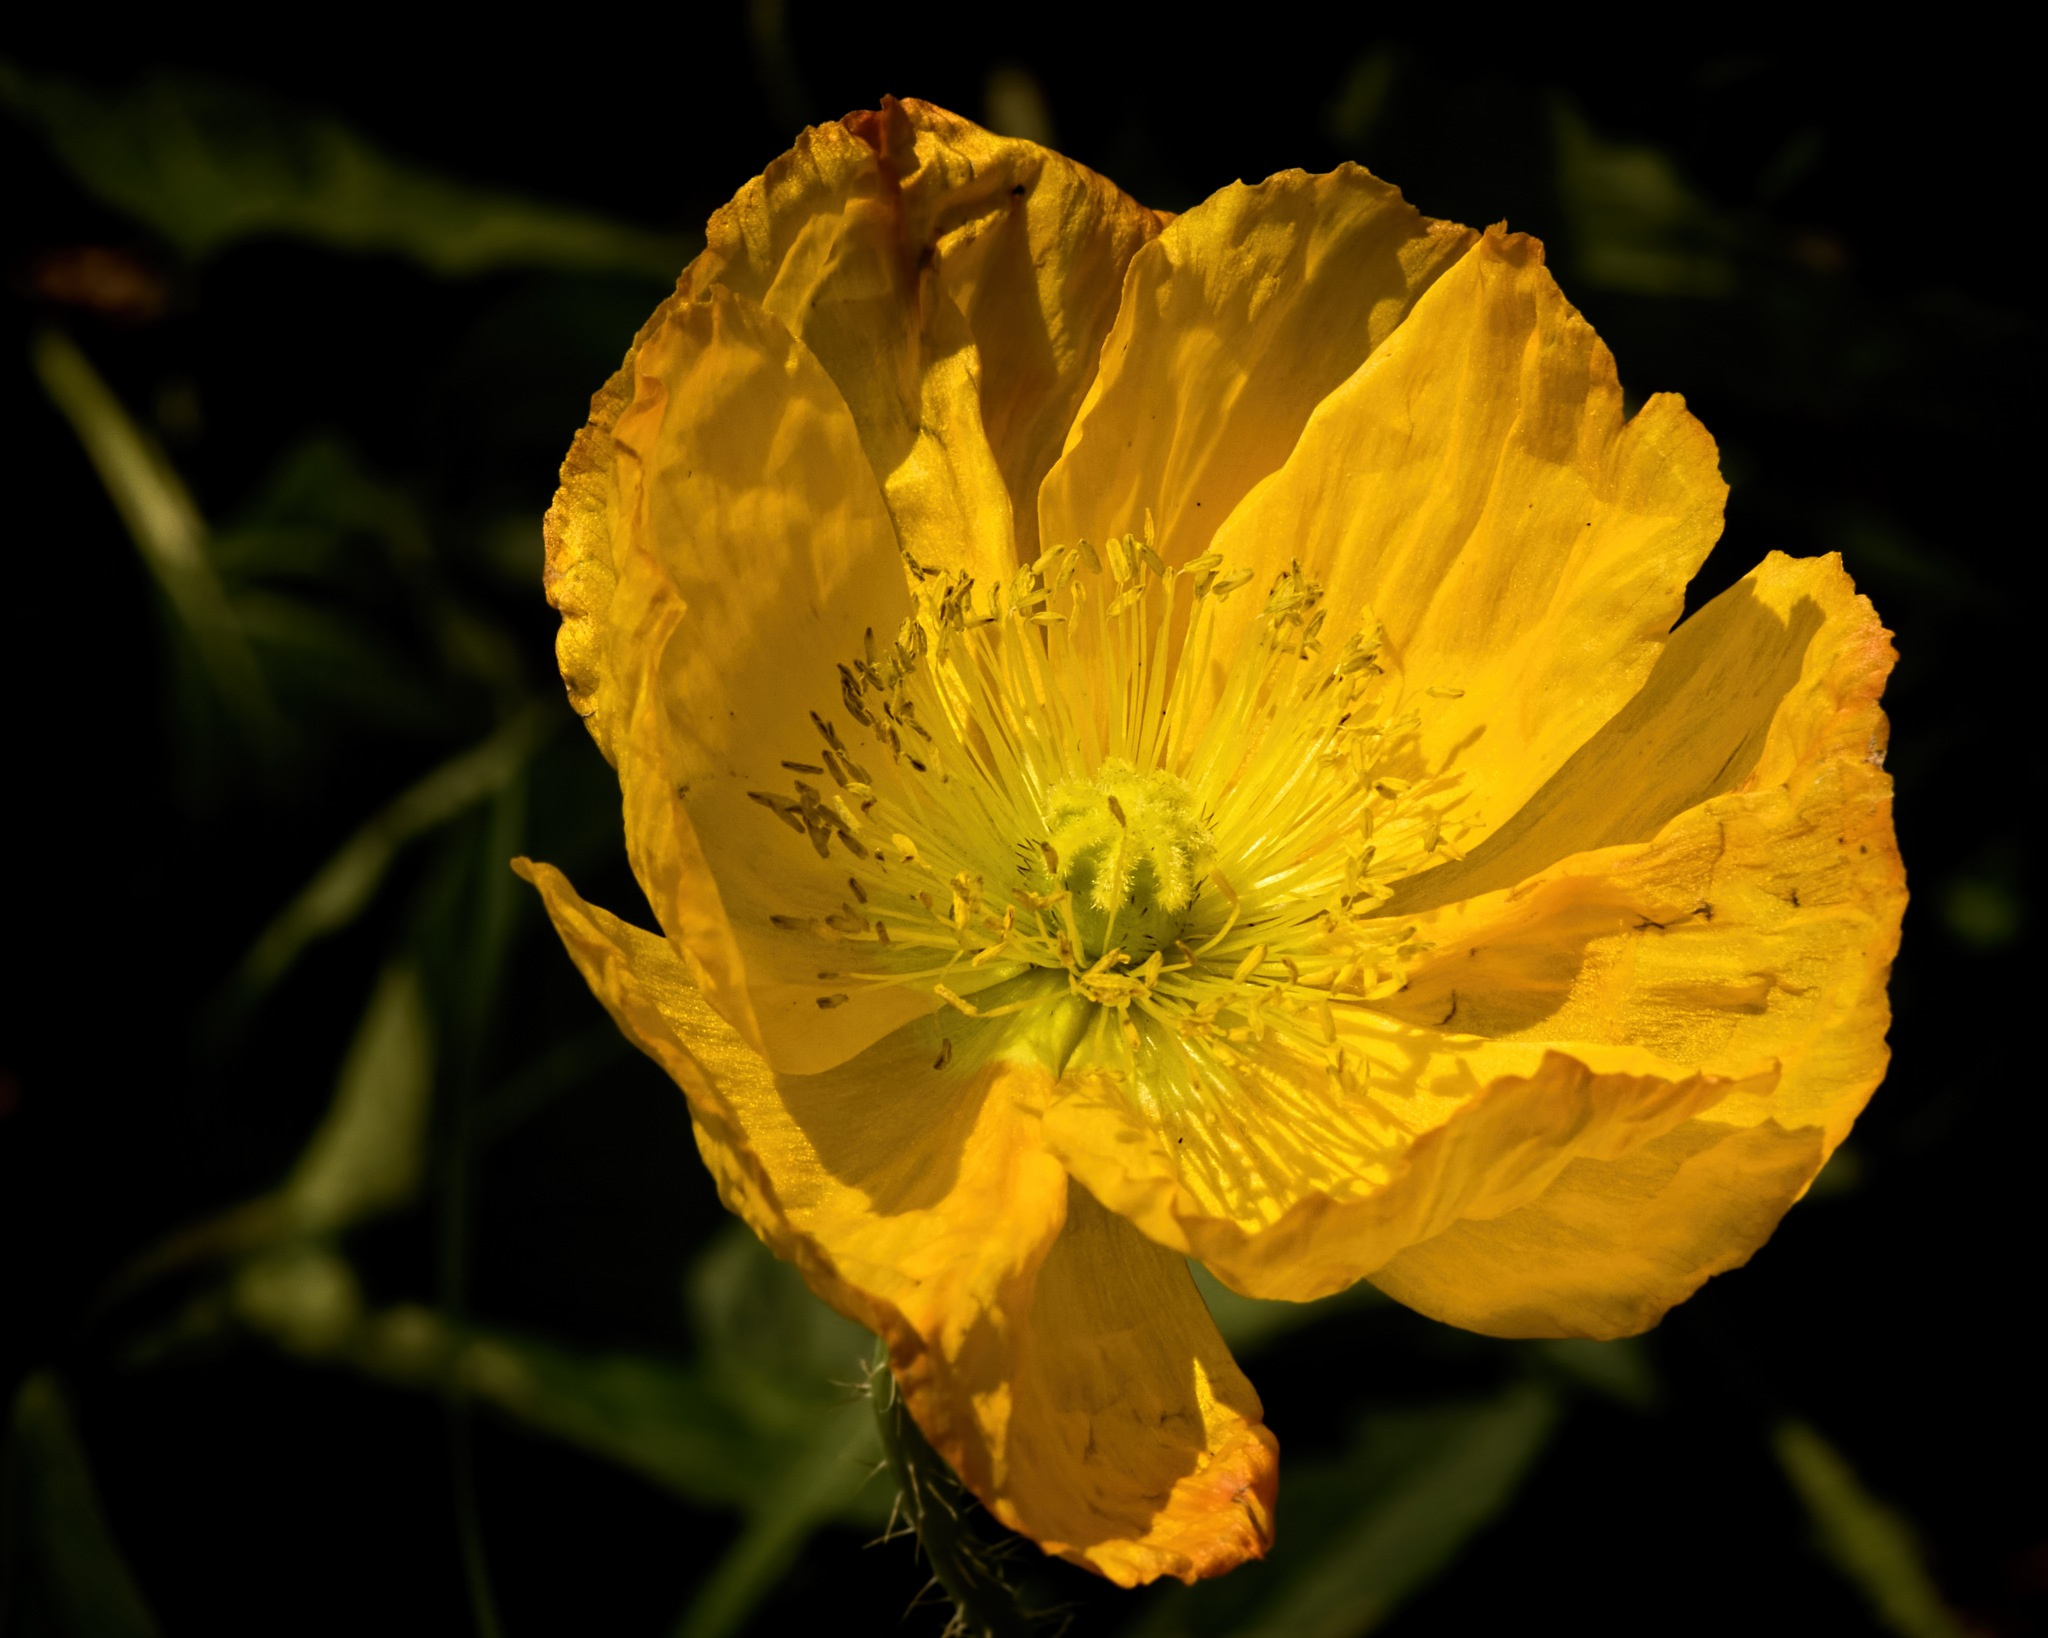 Yellow Poppy 0712 by ThomasJerger